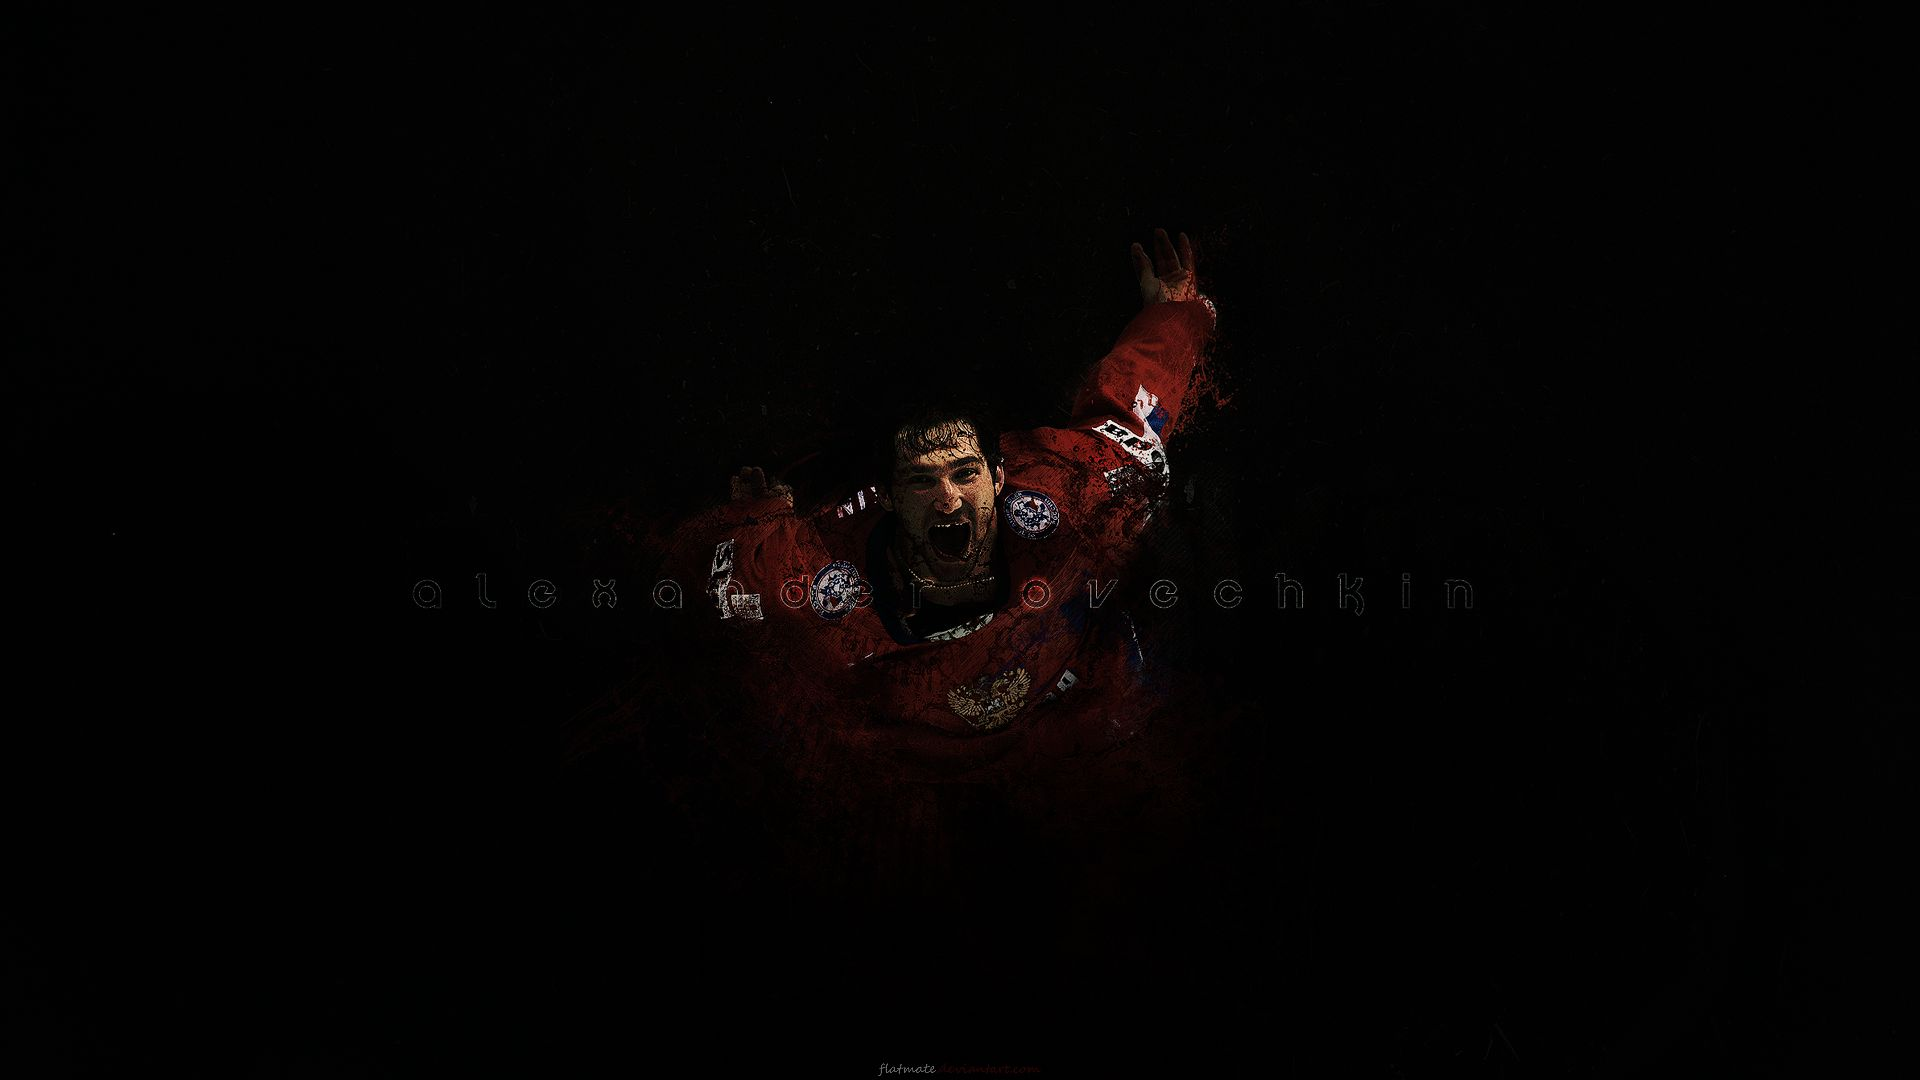 Hockey Ovechkin Wallpapers 1